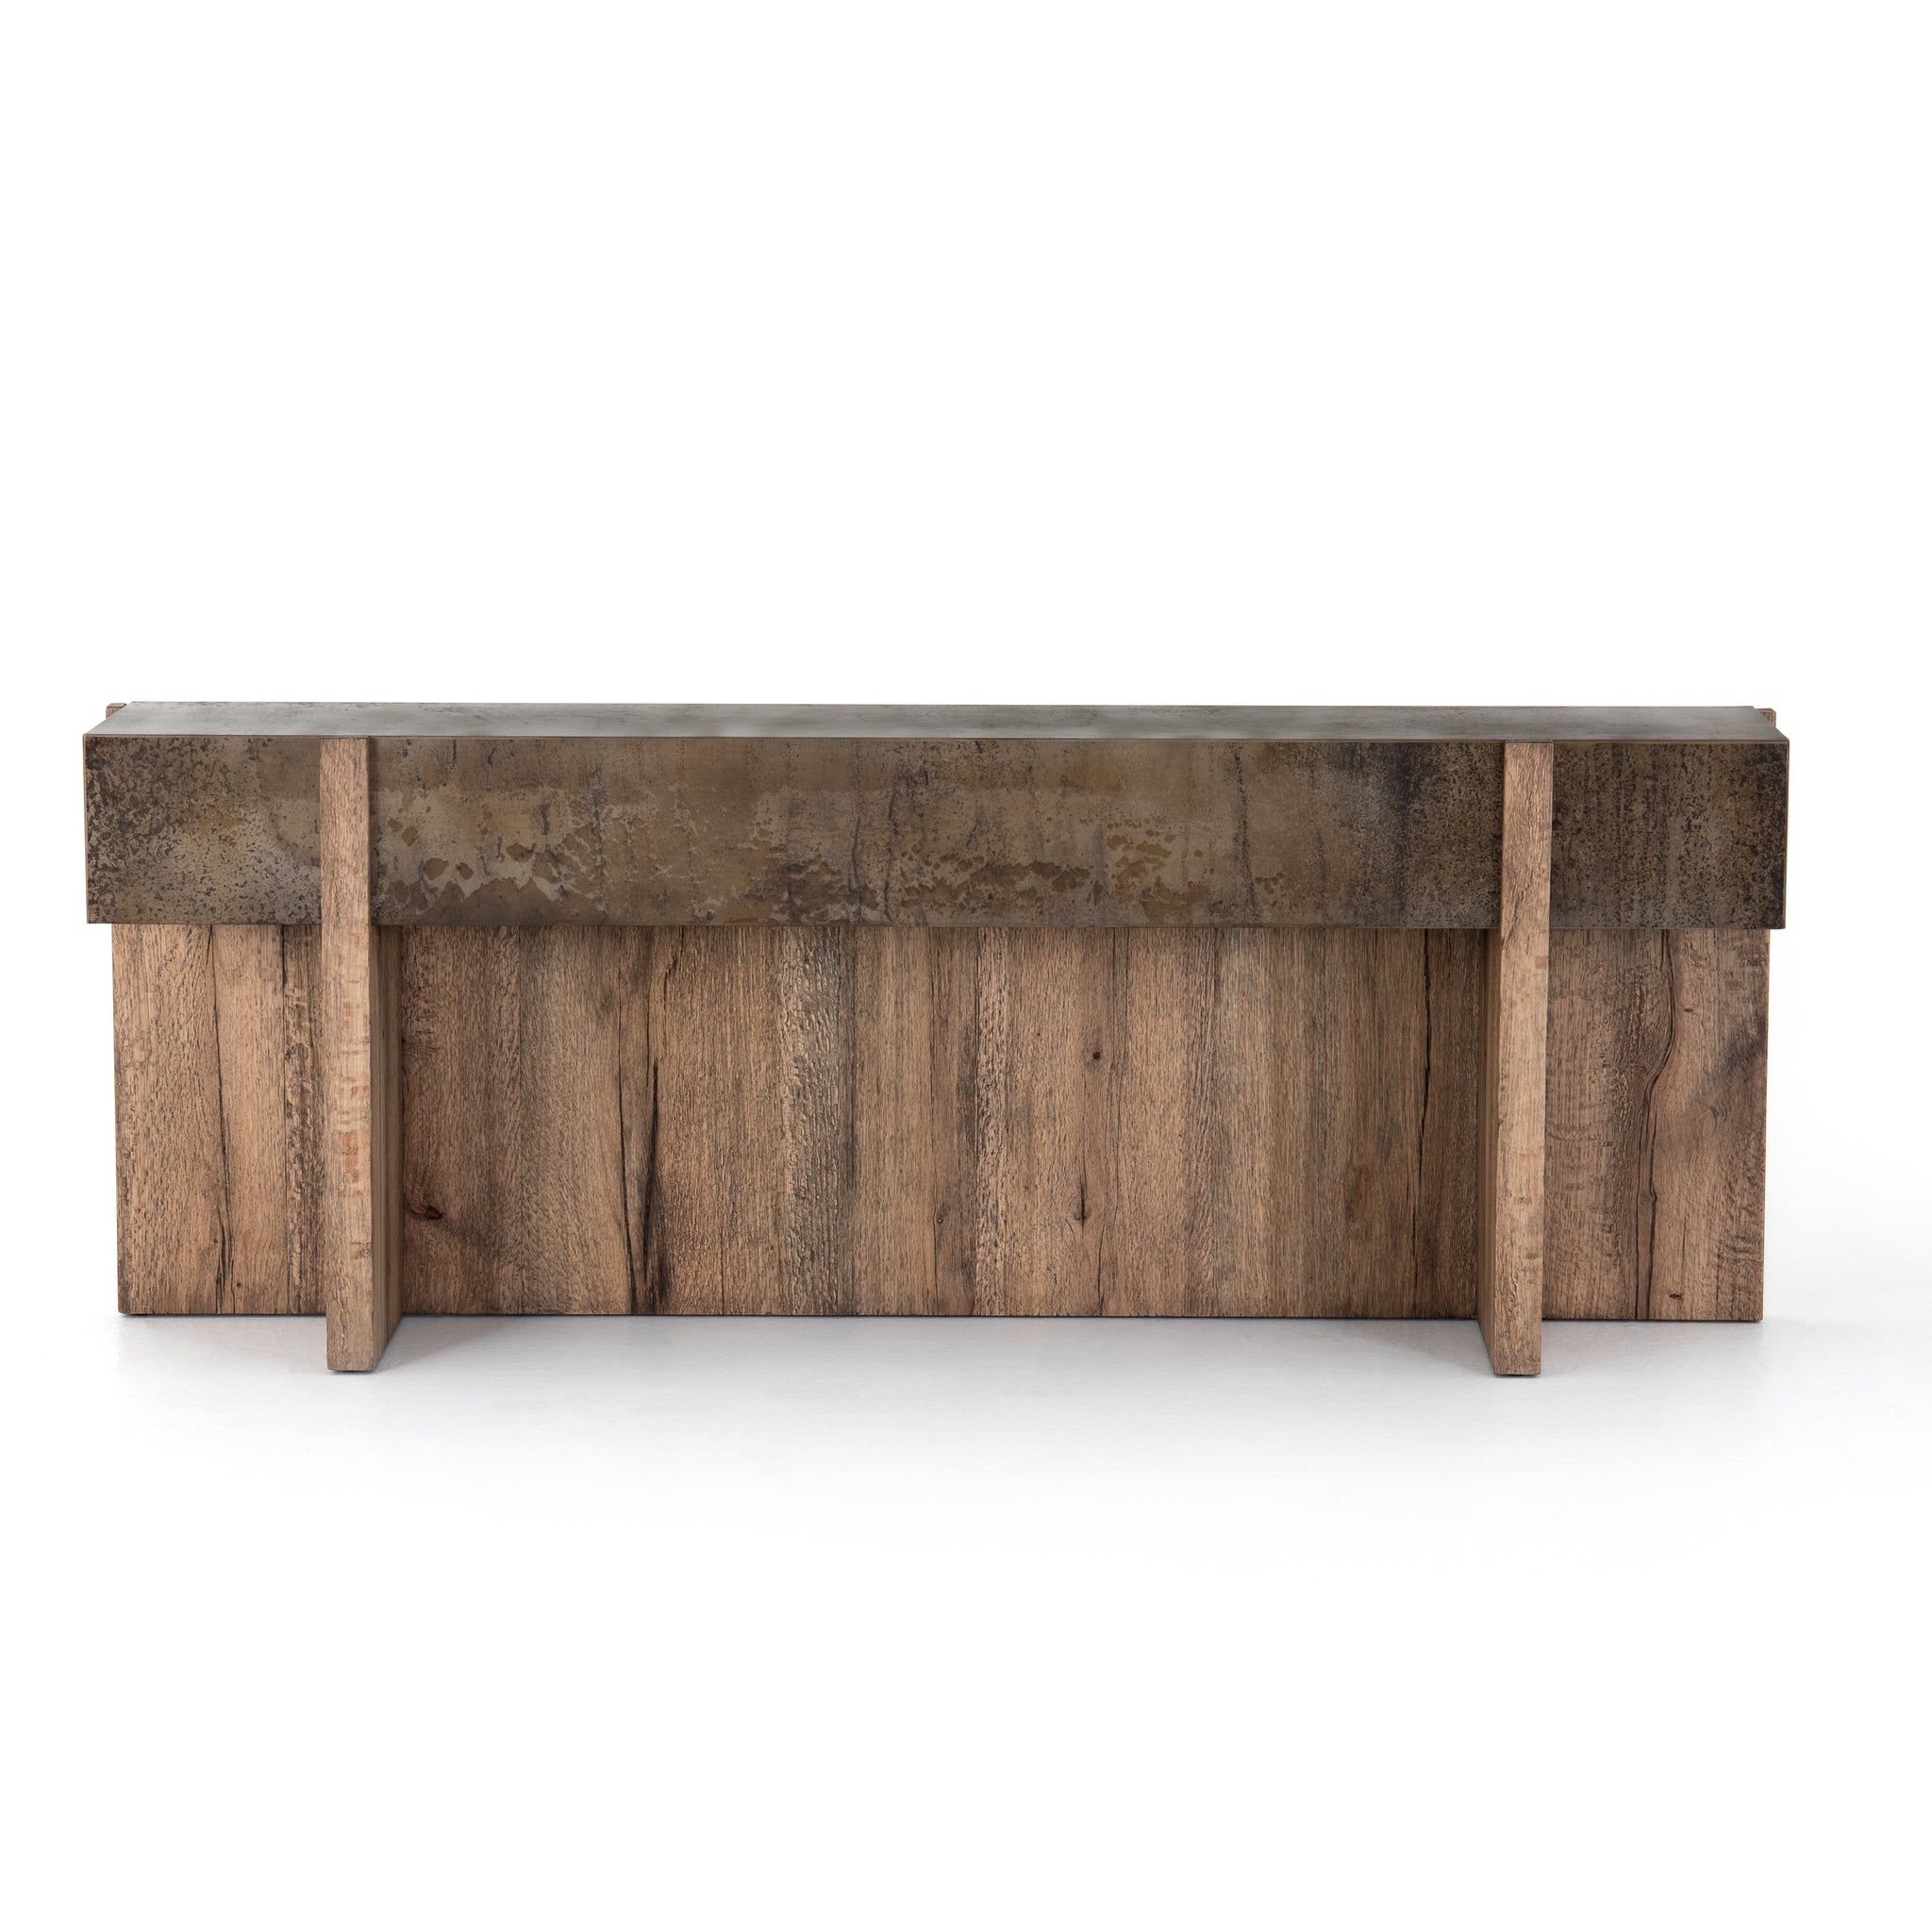 Organic Modern Rustic Oak Console Table